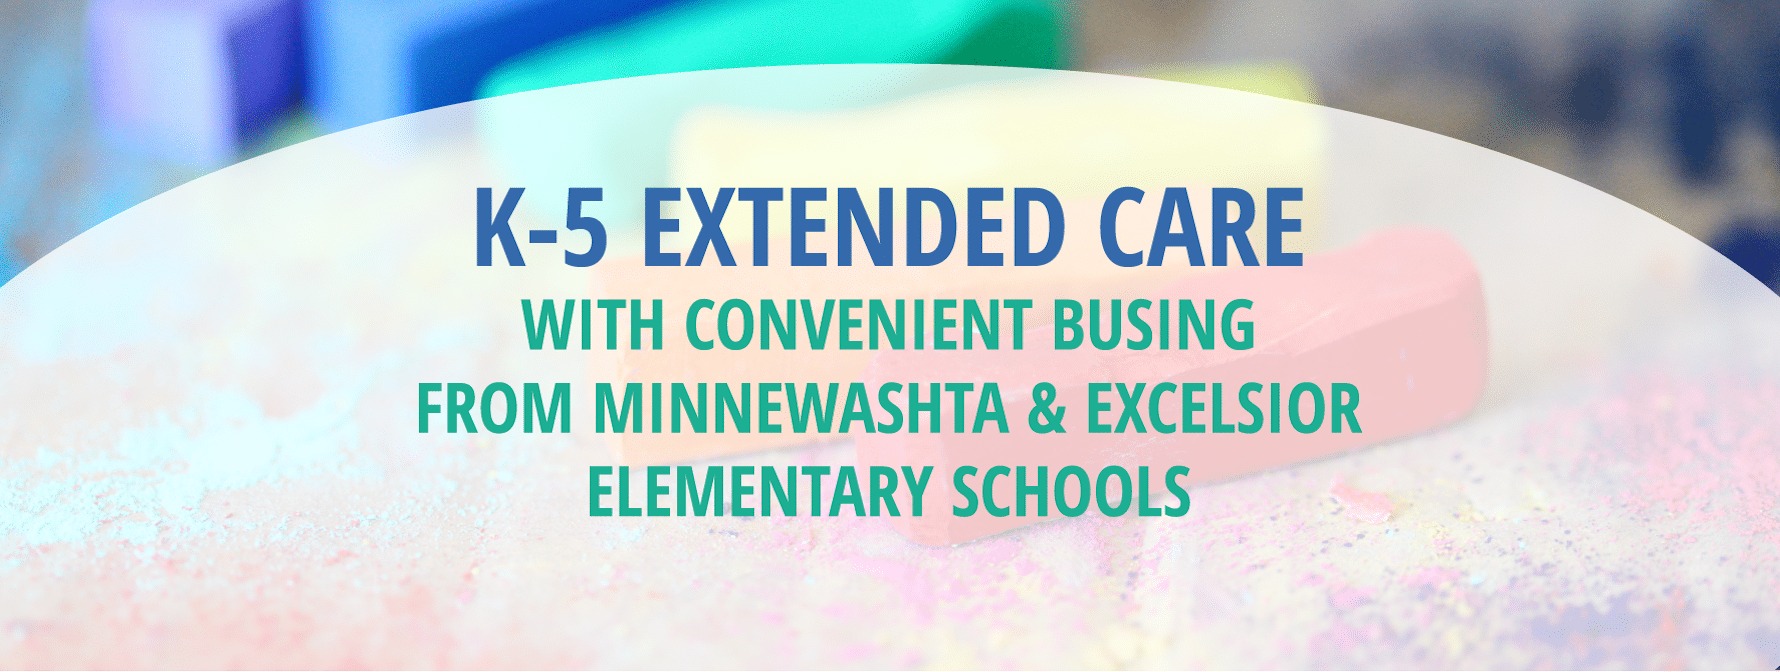 K-5 Extended Care, with convenient busing from Minnewashta & Excelsior elementary schools